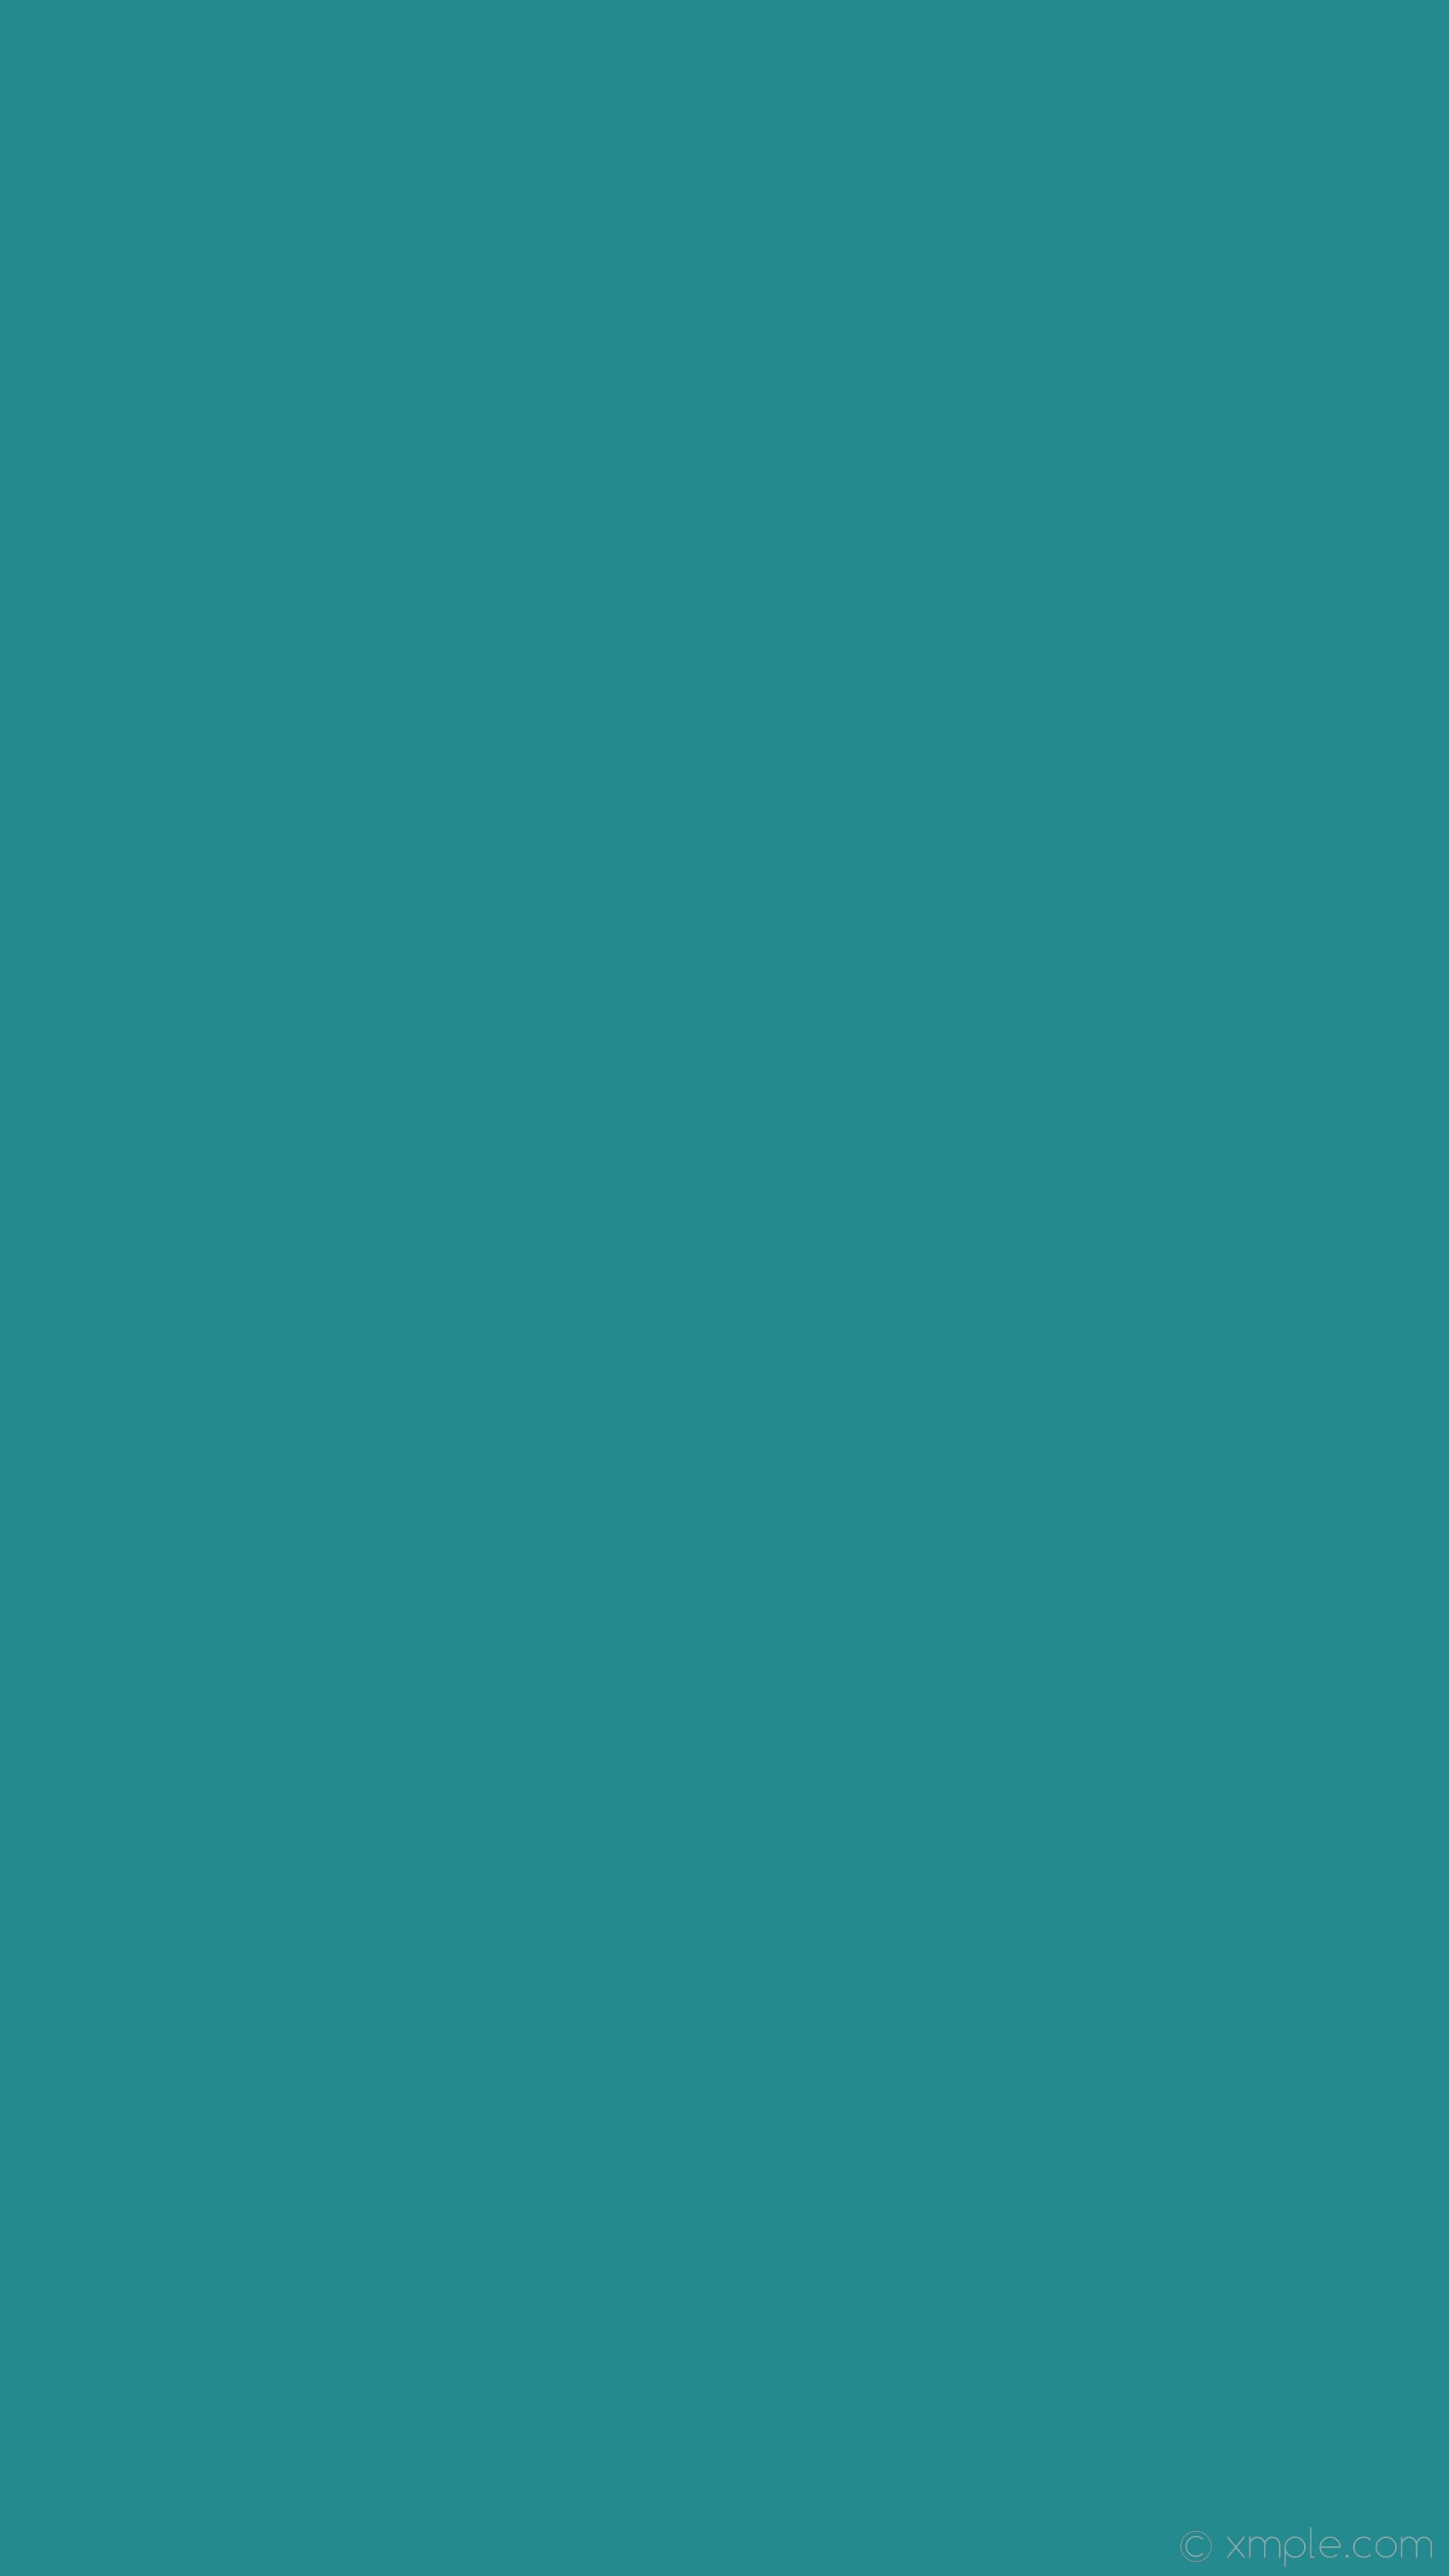 1920x1080 Wallpaper Plain Turquoise One Colour Single Solid Color 0feeaf